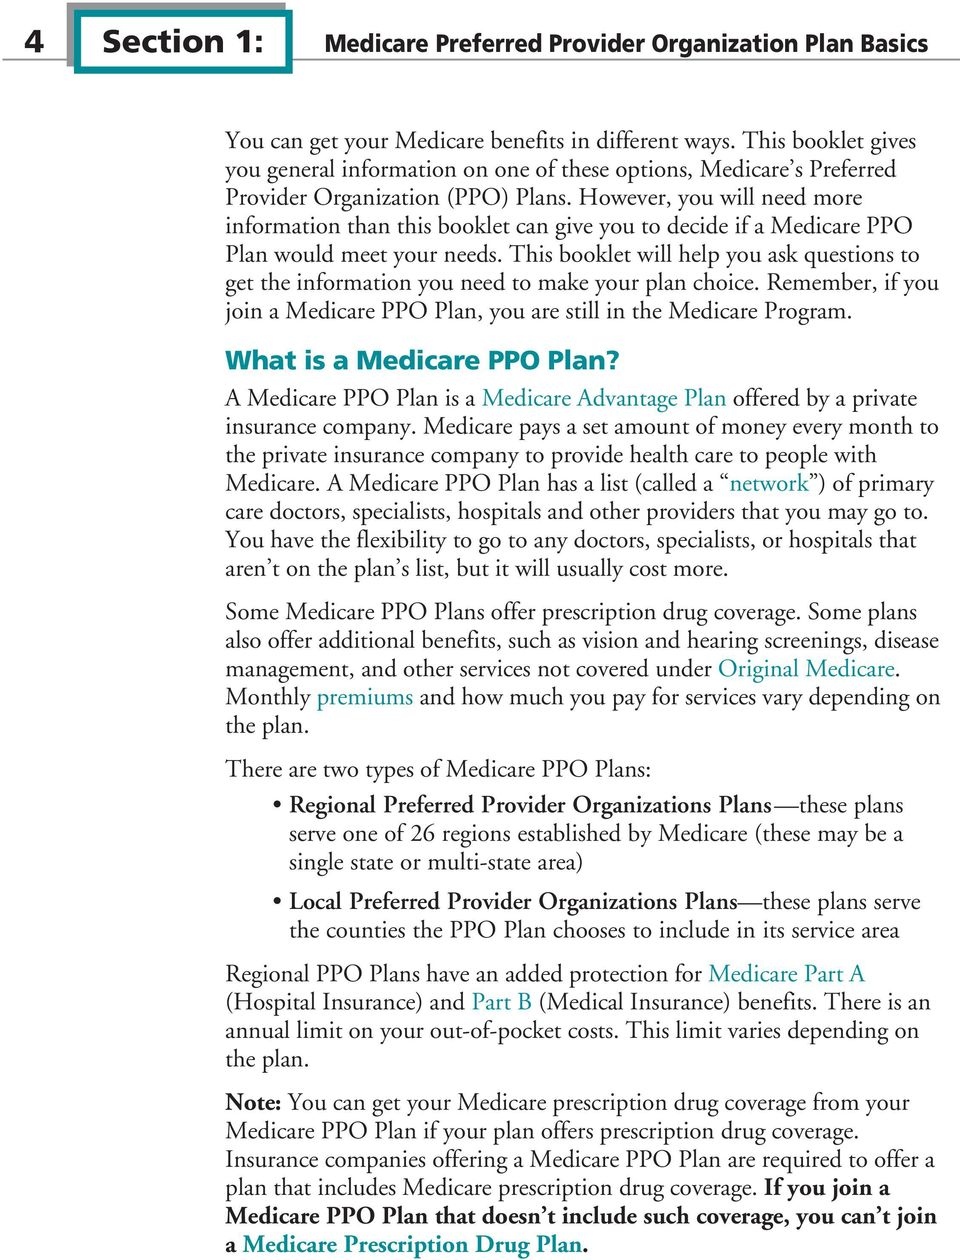 However, you will need more information than this booklet can give you to decide if a Medicare PPO Plan would meet your needs.